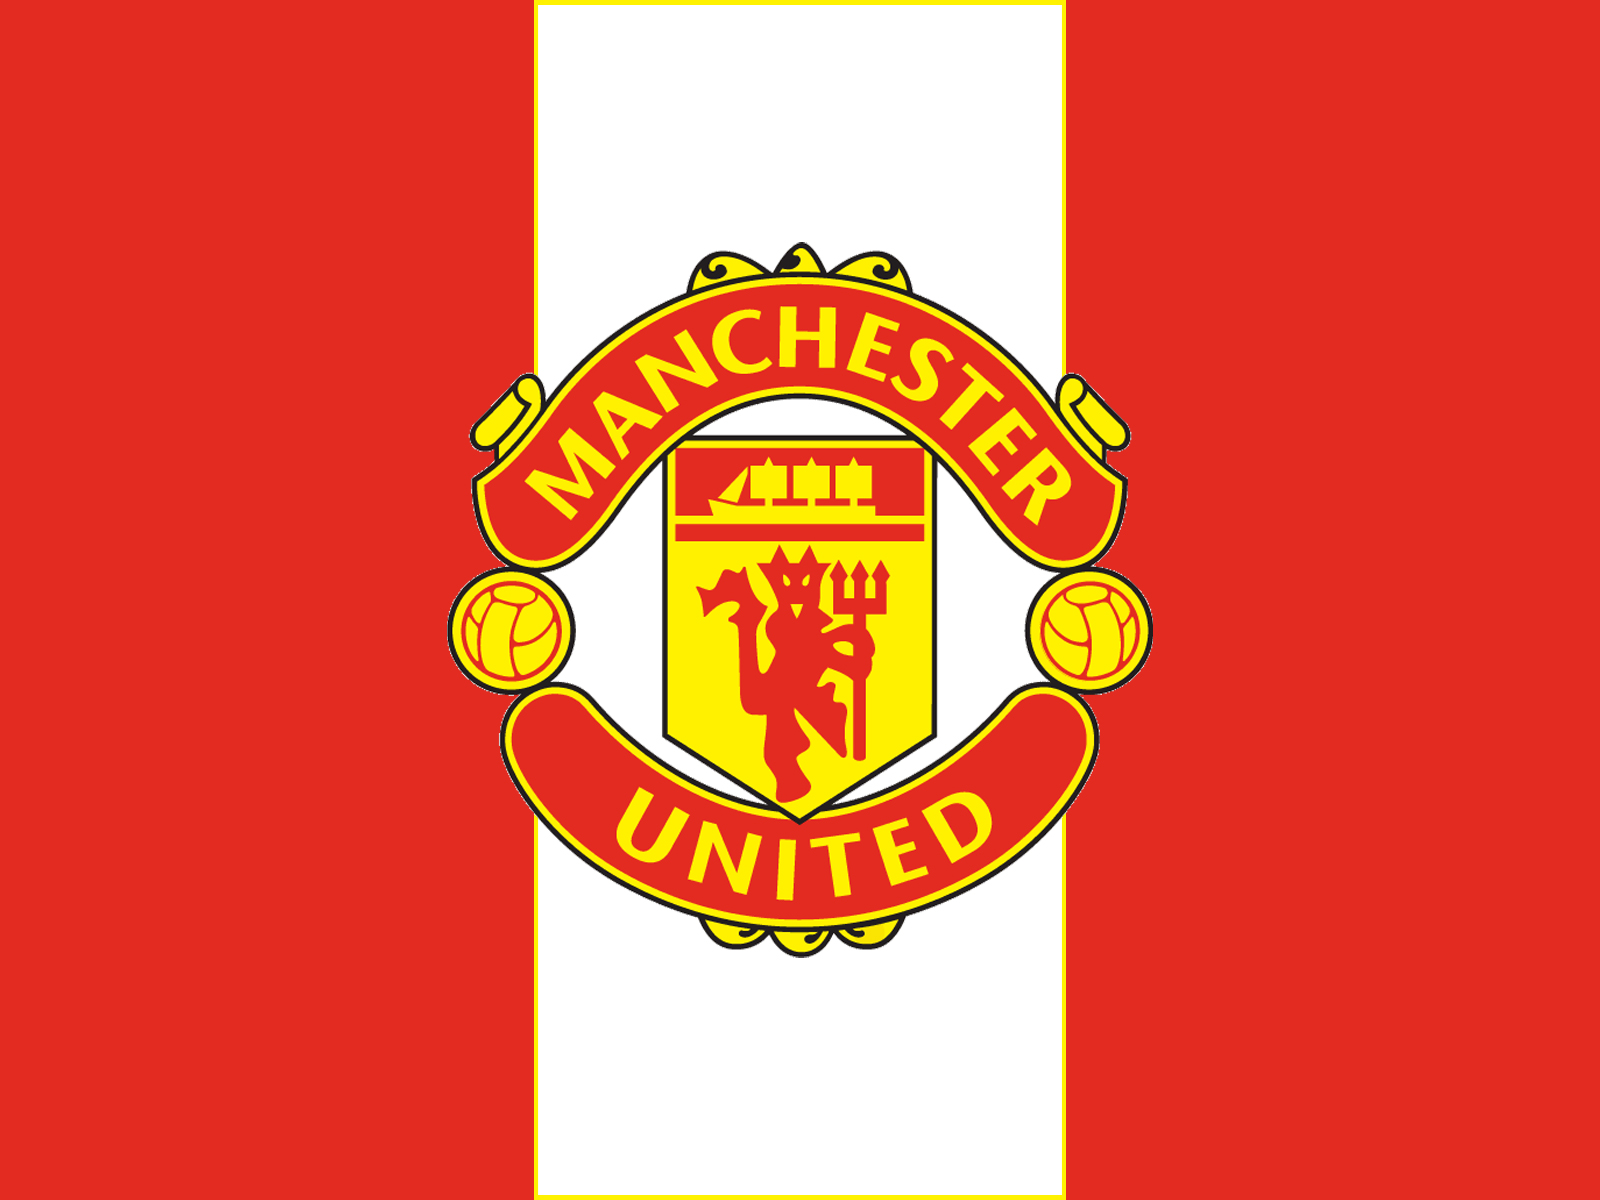 manchester united a history History, facts and stats about the brittish football team manchester united the club was founded in 1878 and is based in the city of manchester.